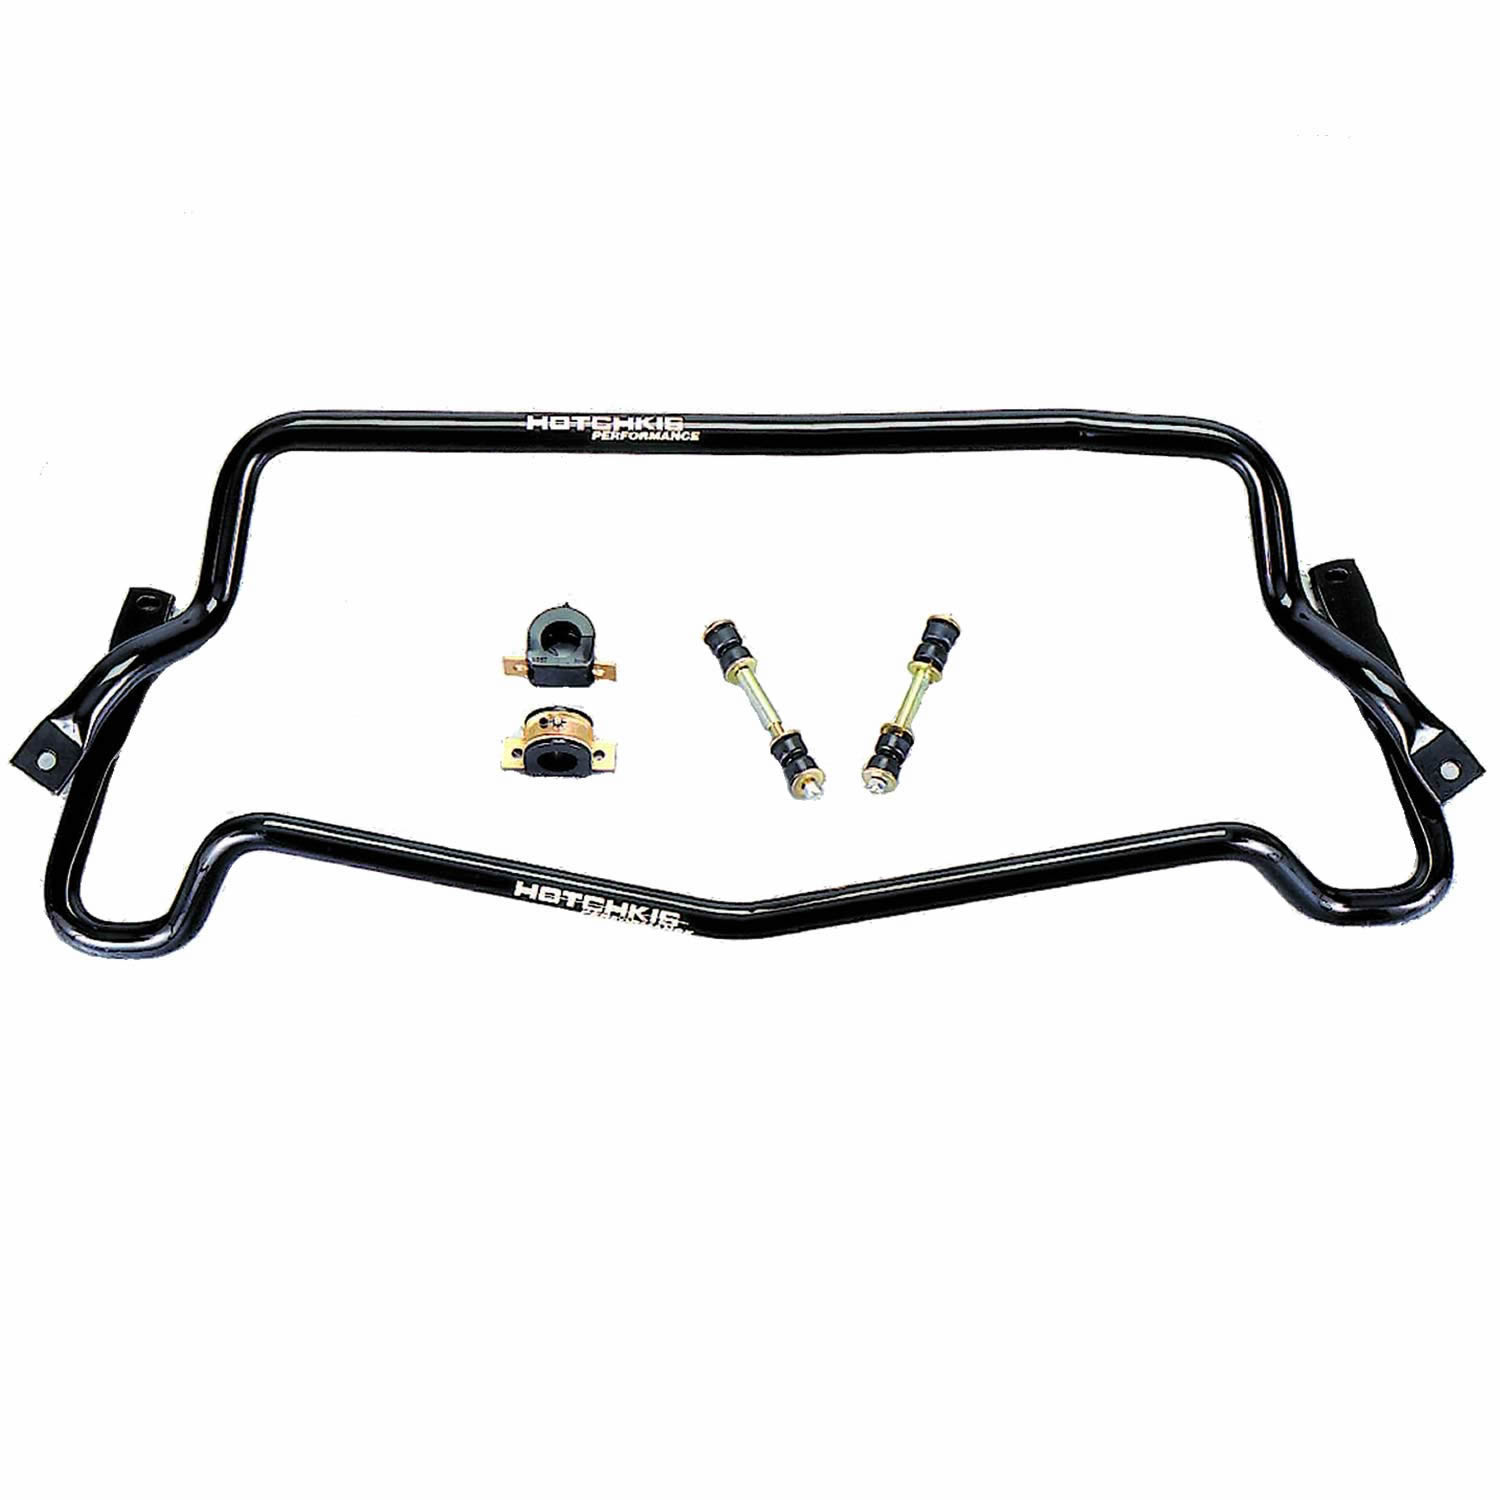 1978-1996 GM B-Body Sport Sway Bars Wagon from Hotchkis Sport Suspension